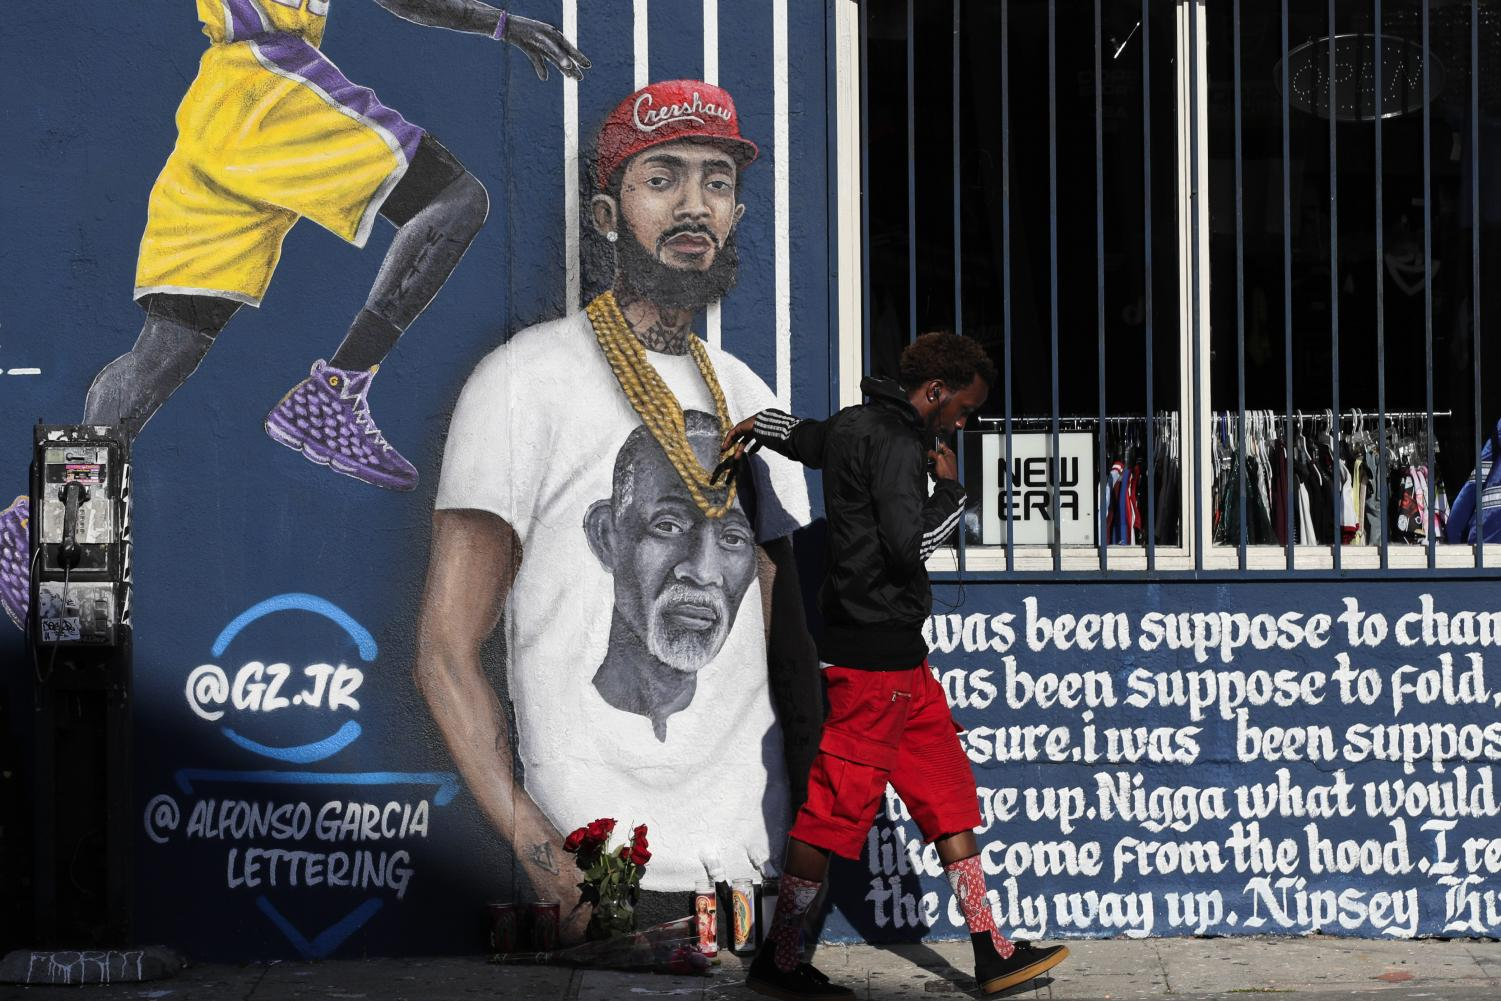 A man touches a mural in Los Angeles depicting Hussle on April 2, two days after his death. Courtesy of Associated Press.